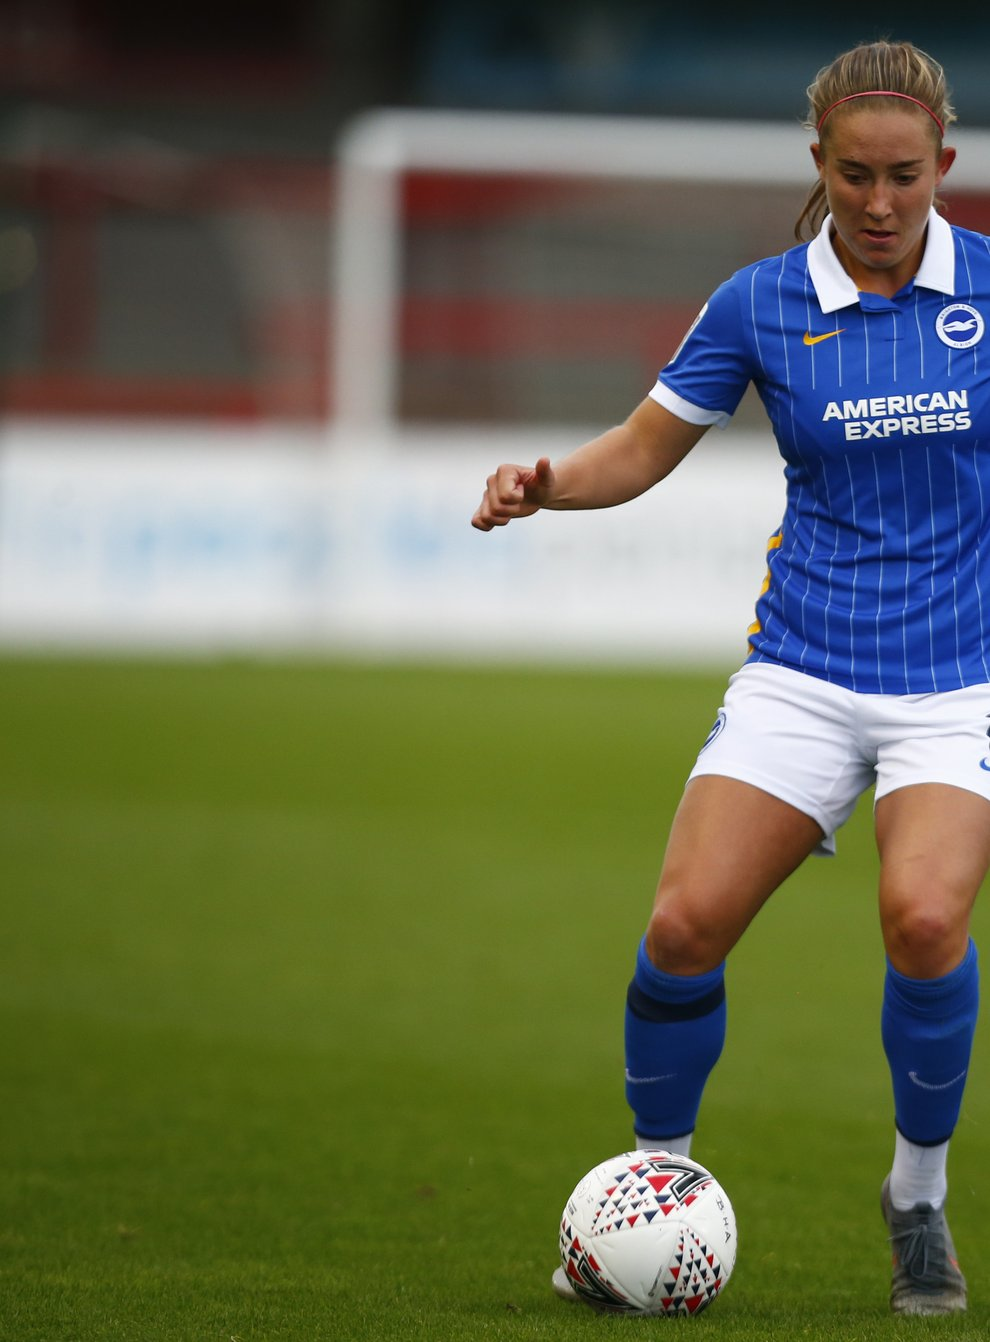 <p>Le Tissier has high expectations for her career</p>